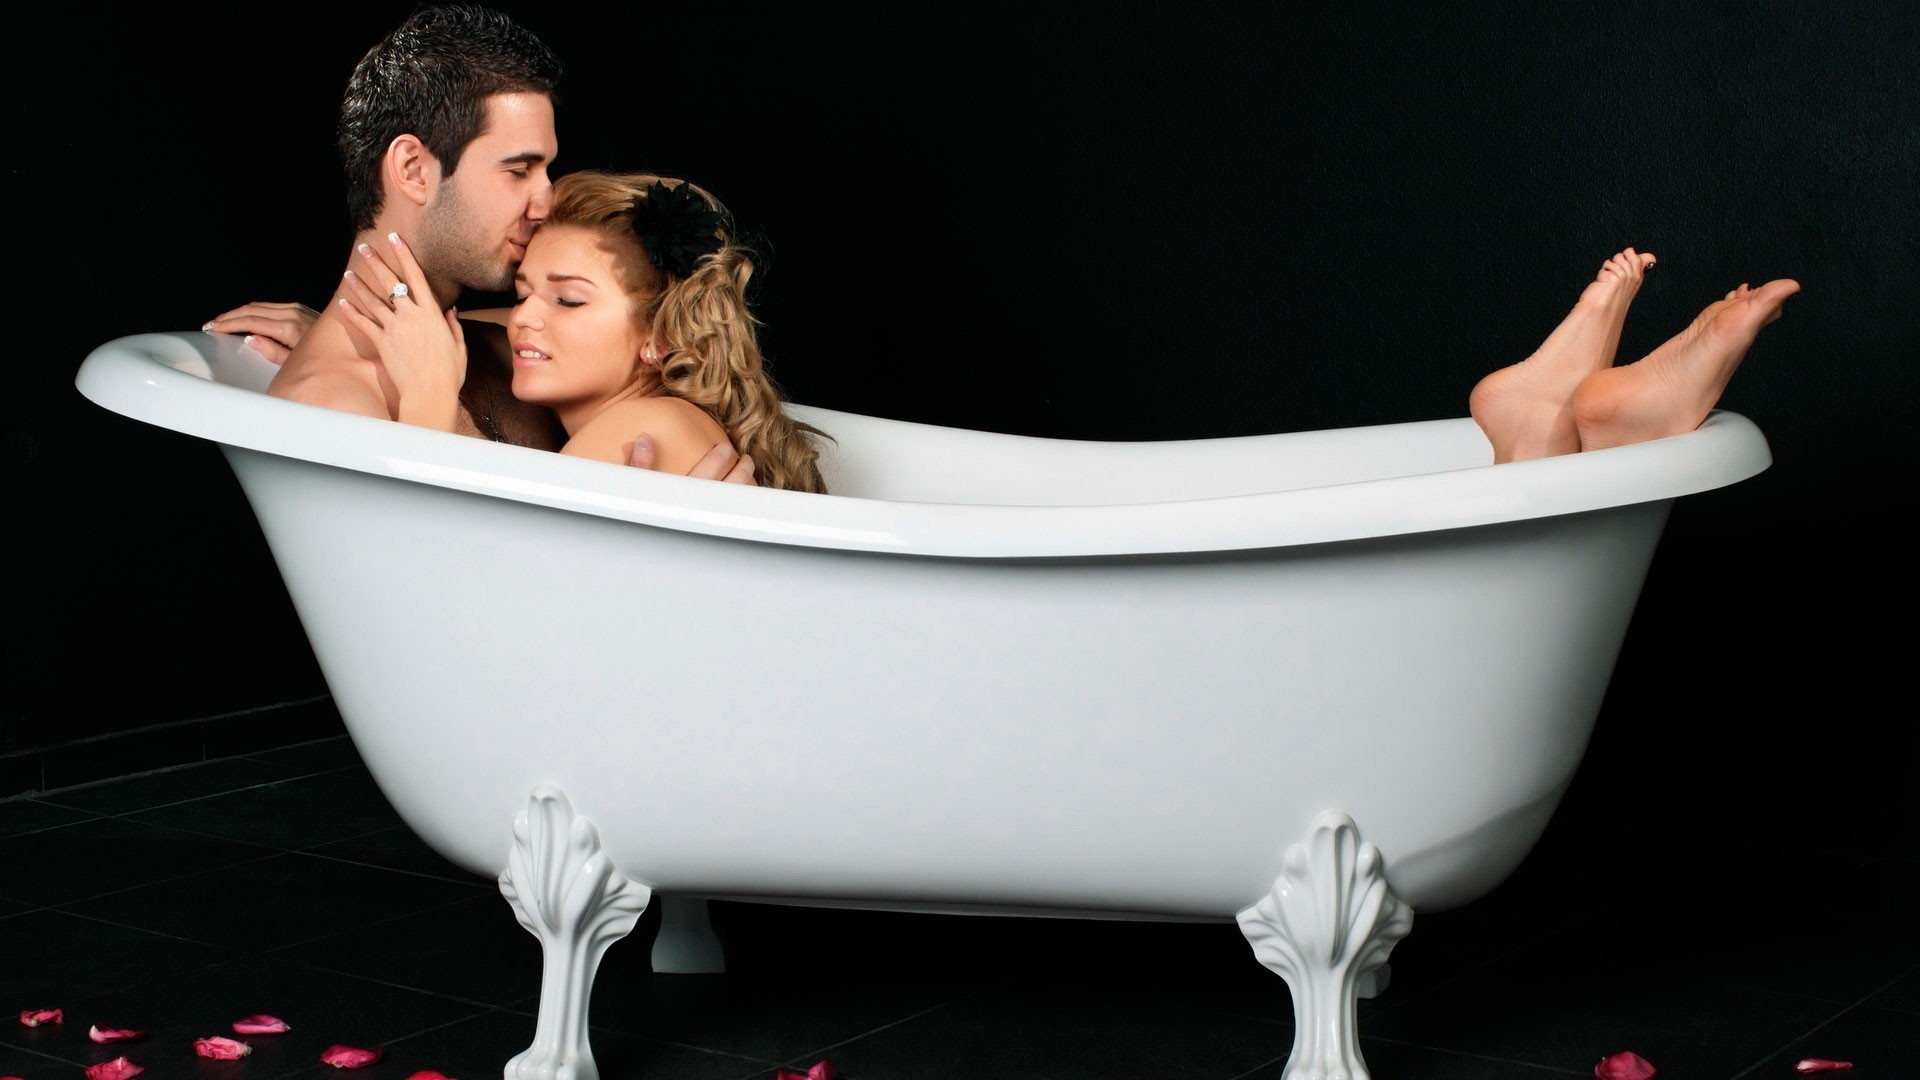 Naked couple in bathtub